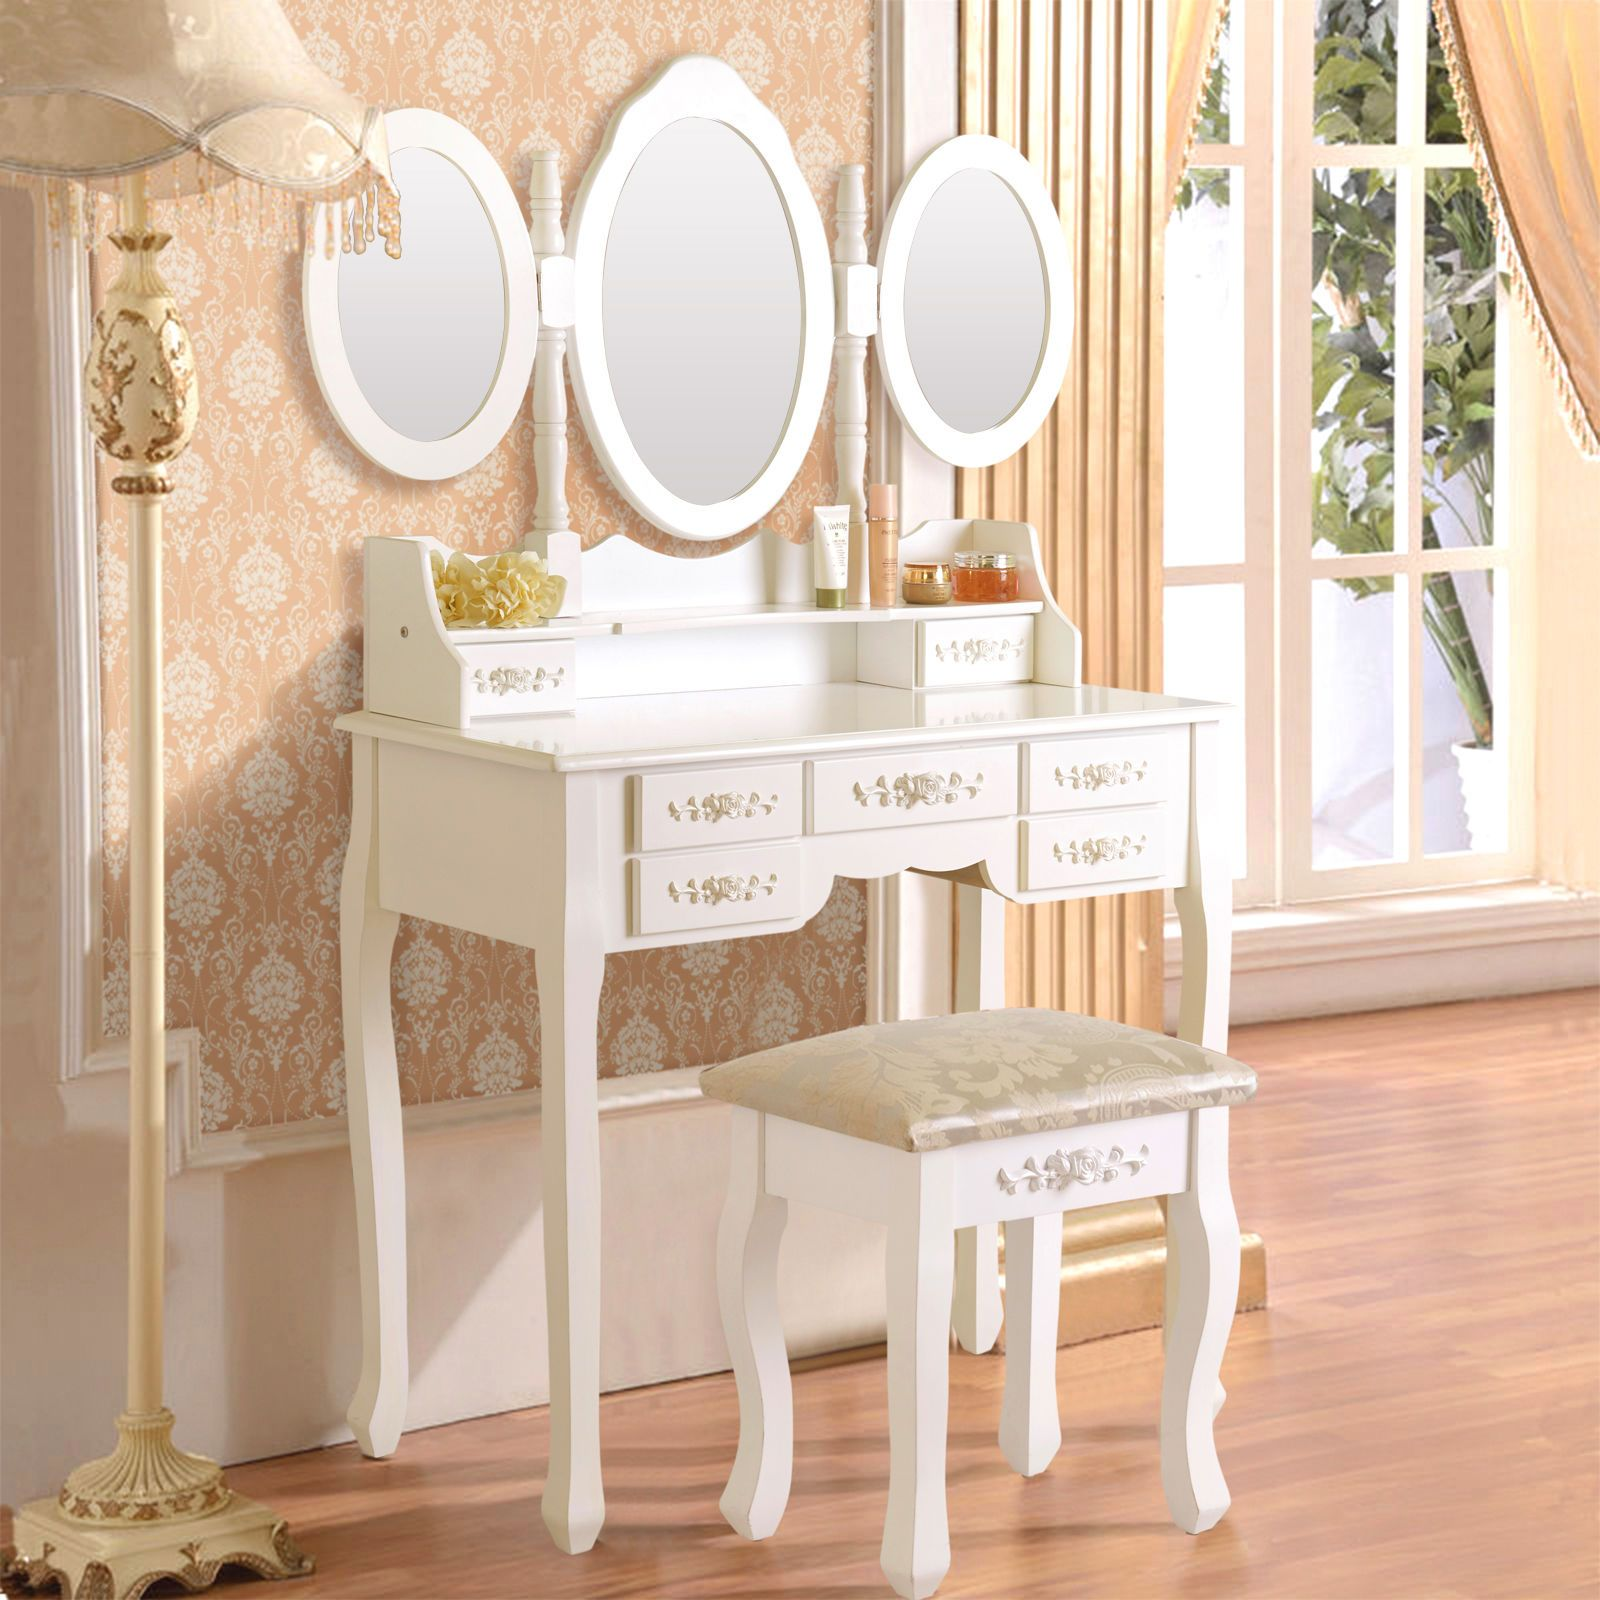 White vanity makeup dressing table set wstool drawerufolding